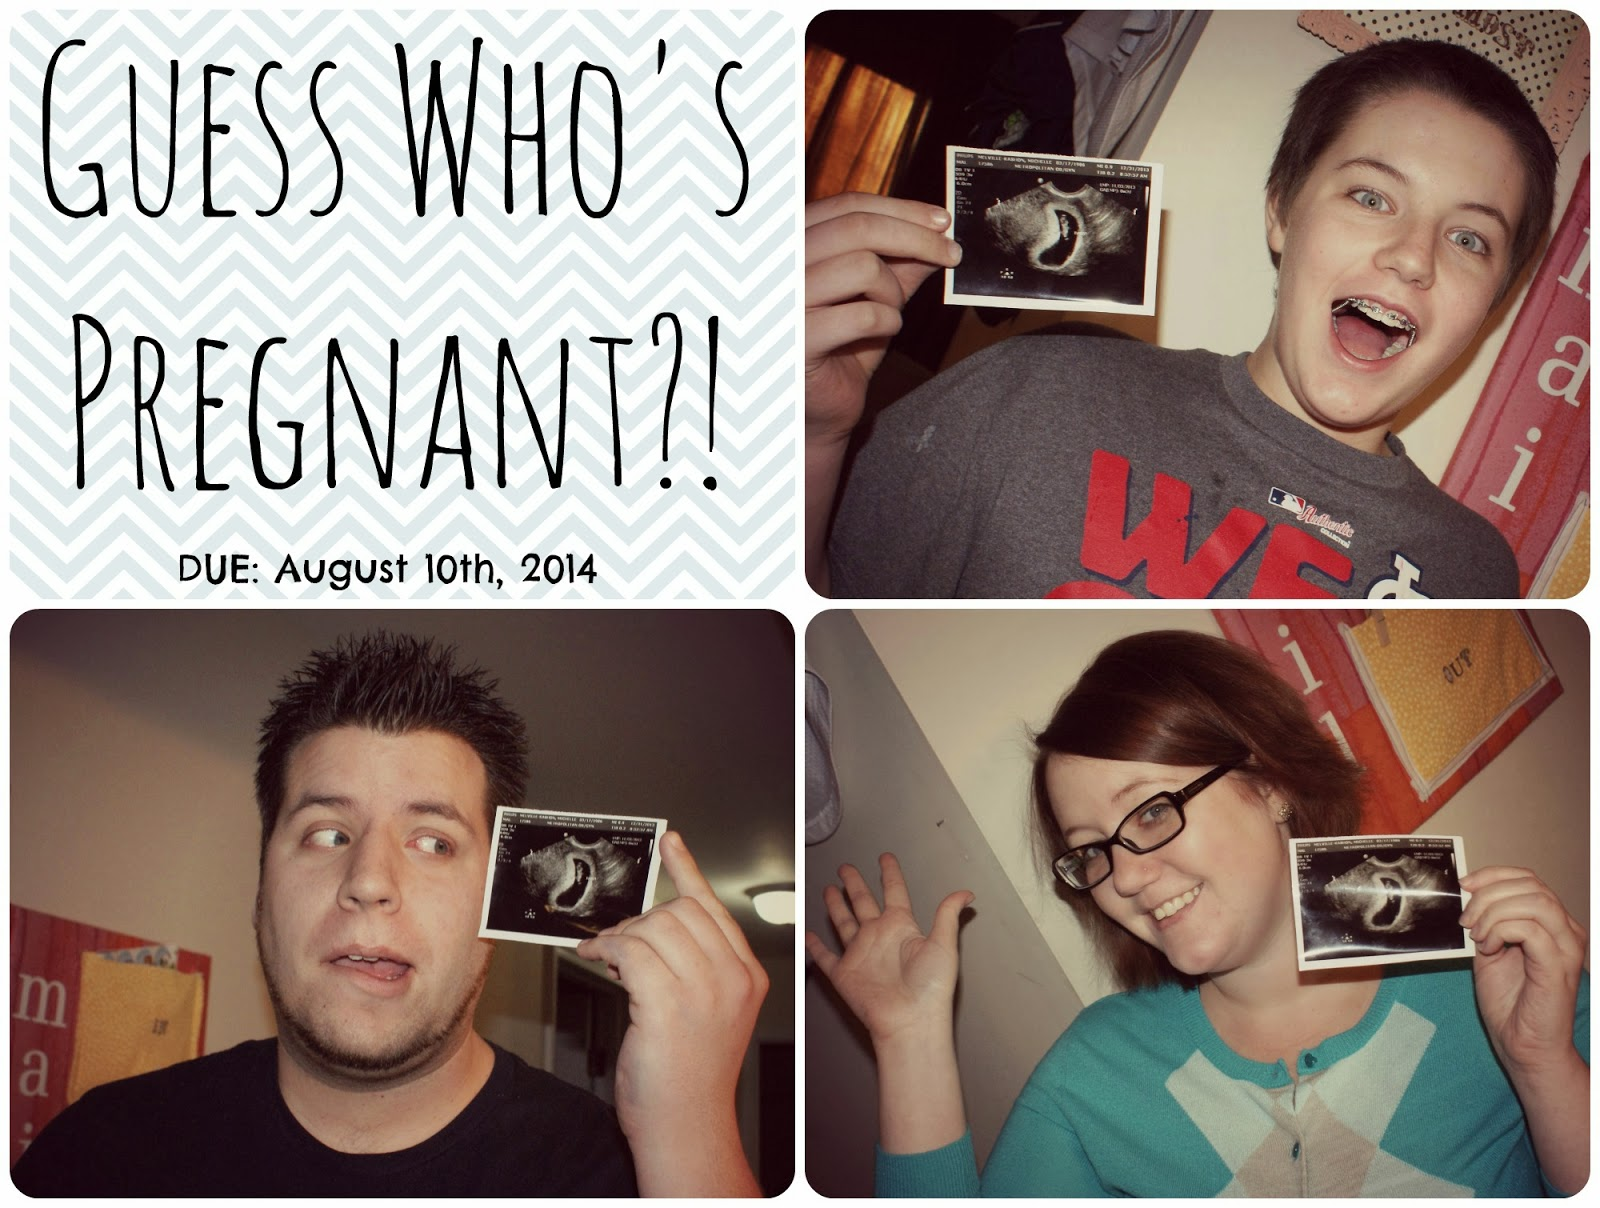 Facebook Pregnancy Announcement